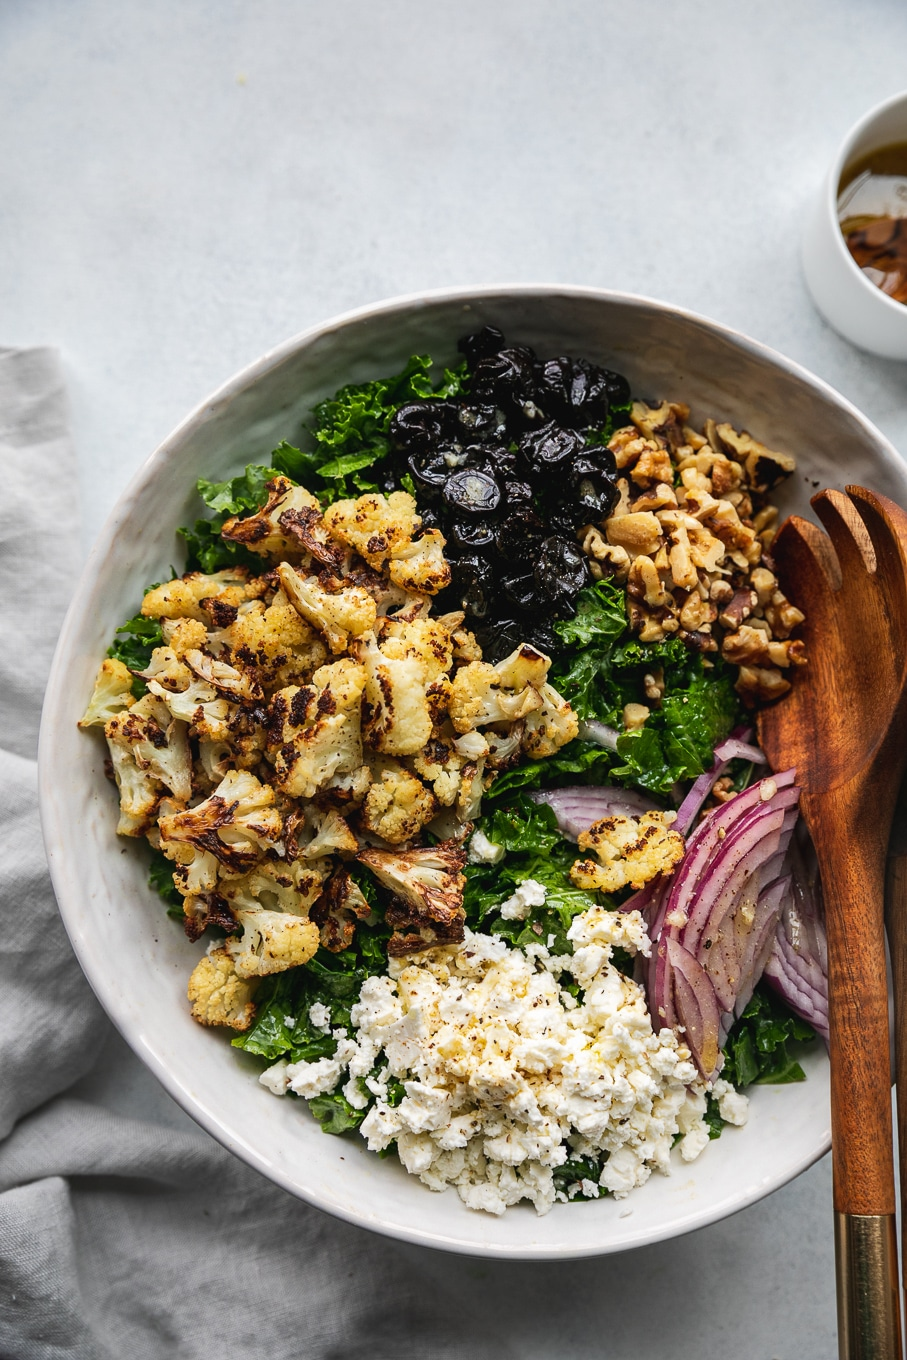 Overhead close up shot of a bowl of kale salad topped with piles of roasted cauliflower, dried cherries, toasted walnuts, red onion, and feta, with a wooden salad server in the bowl